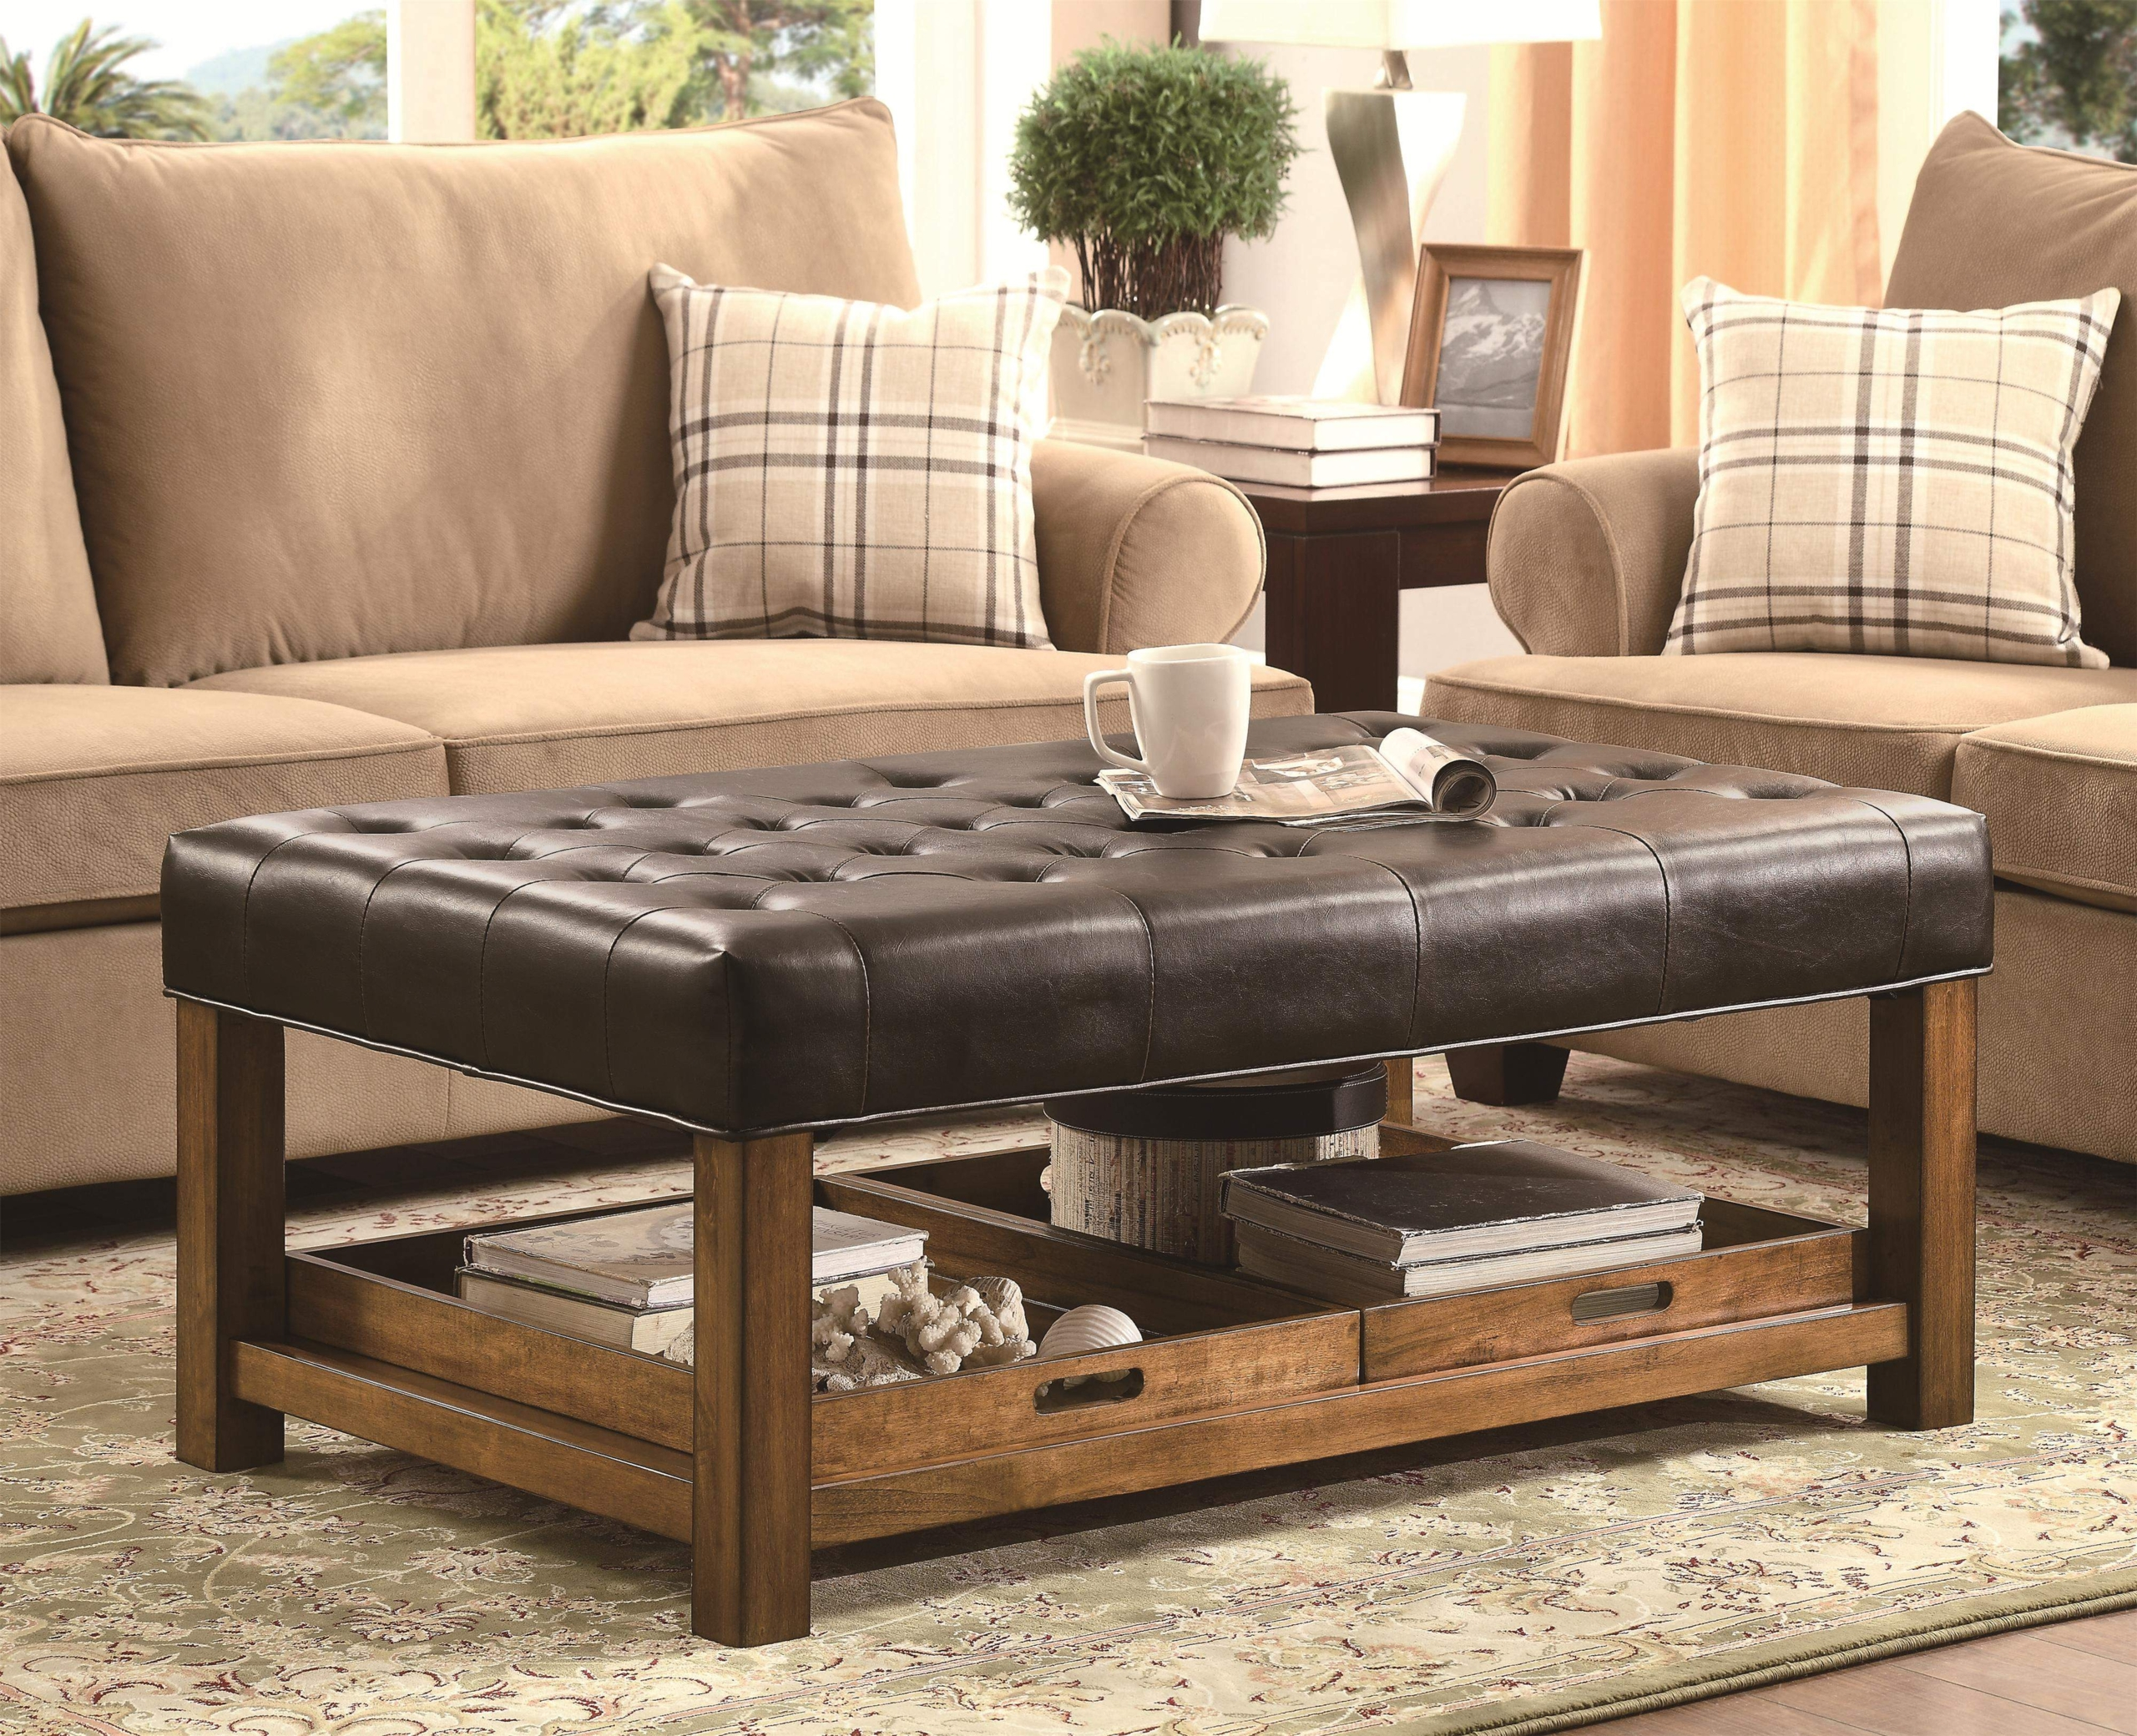 Ottoman Coffee Table Leather.Leather Tufted Ottoman Coffee Table Ideas On Foter